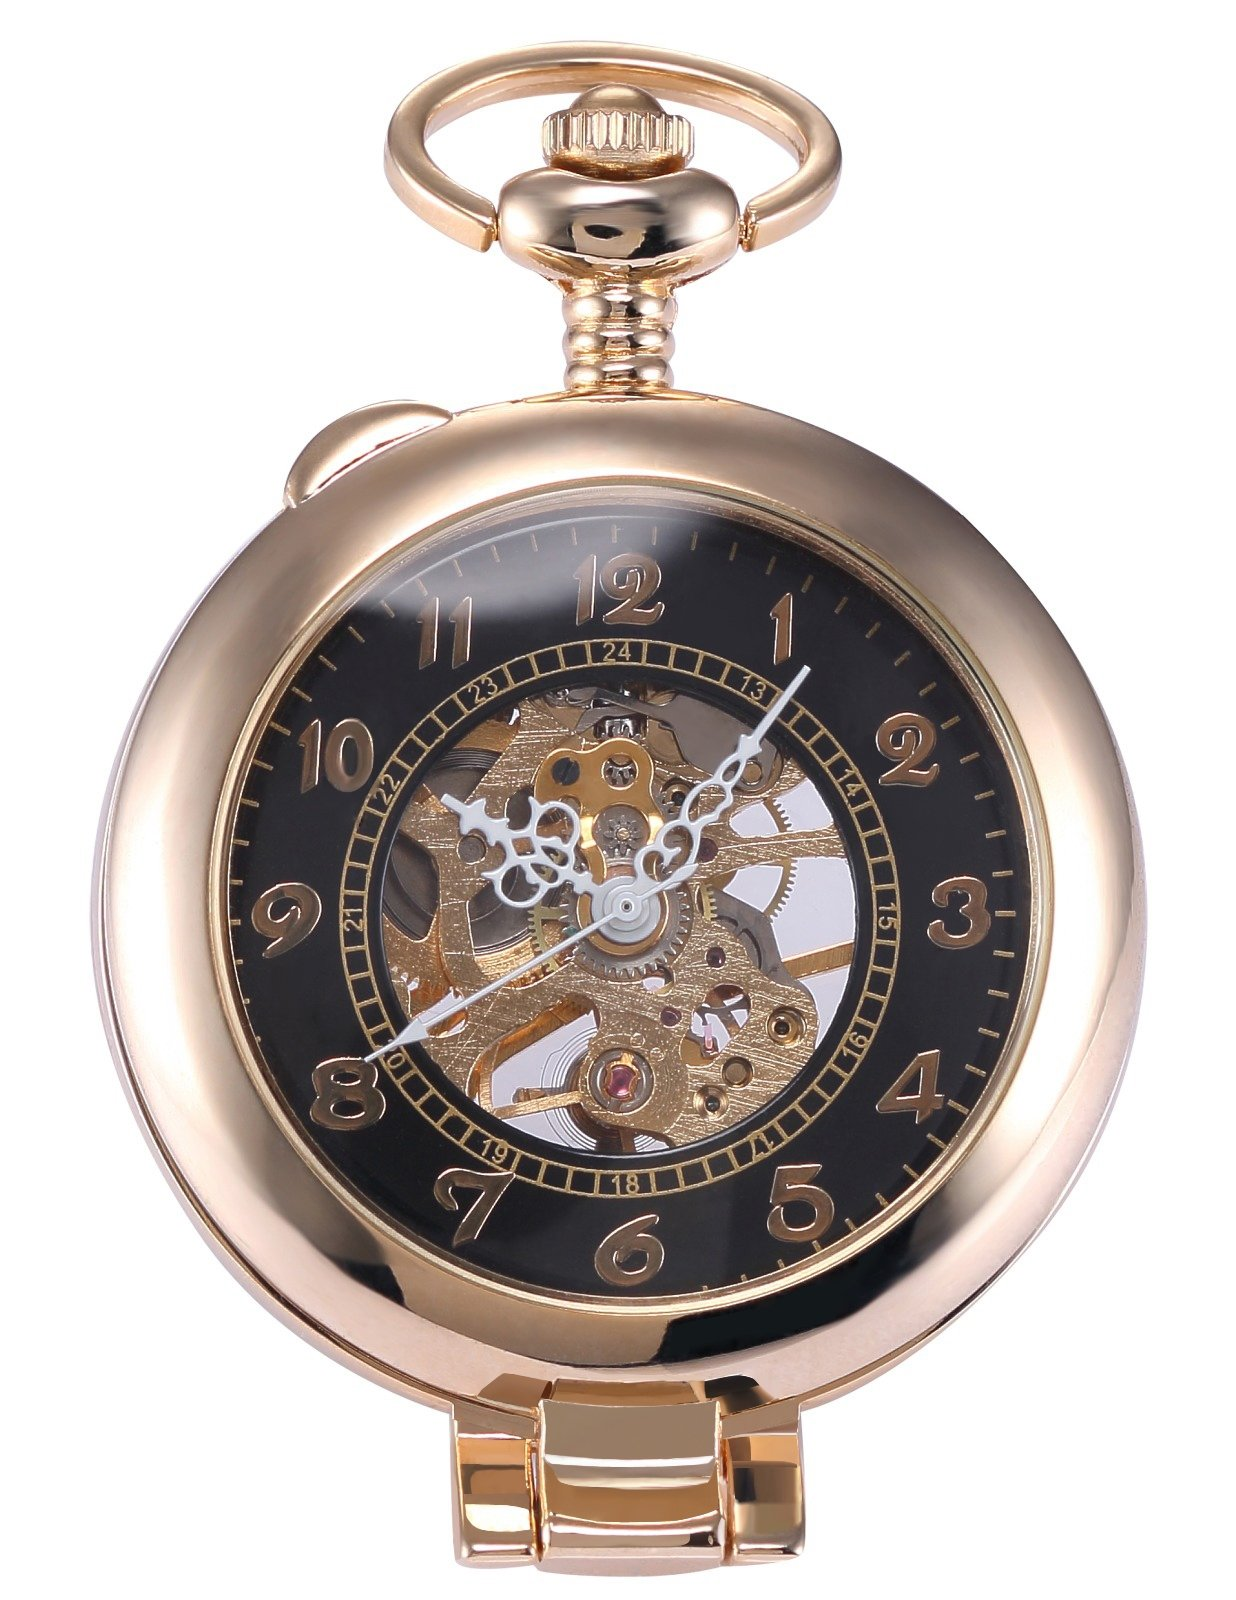 AMPM24 Unique Golden Magnifier Skeleton Mechanical Men's Pocket Watch Chain Gift WPK022 by AMPM24 (Image #1)